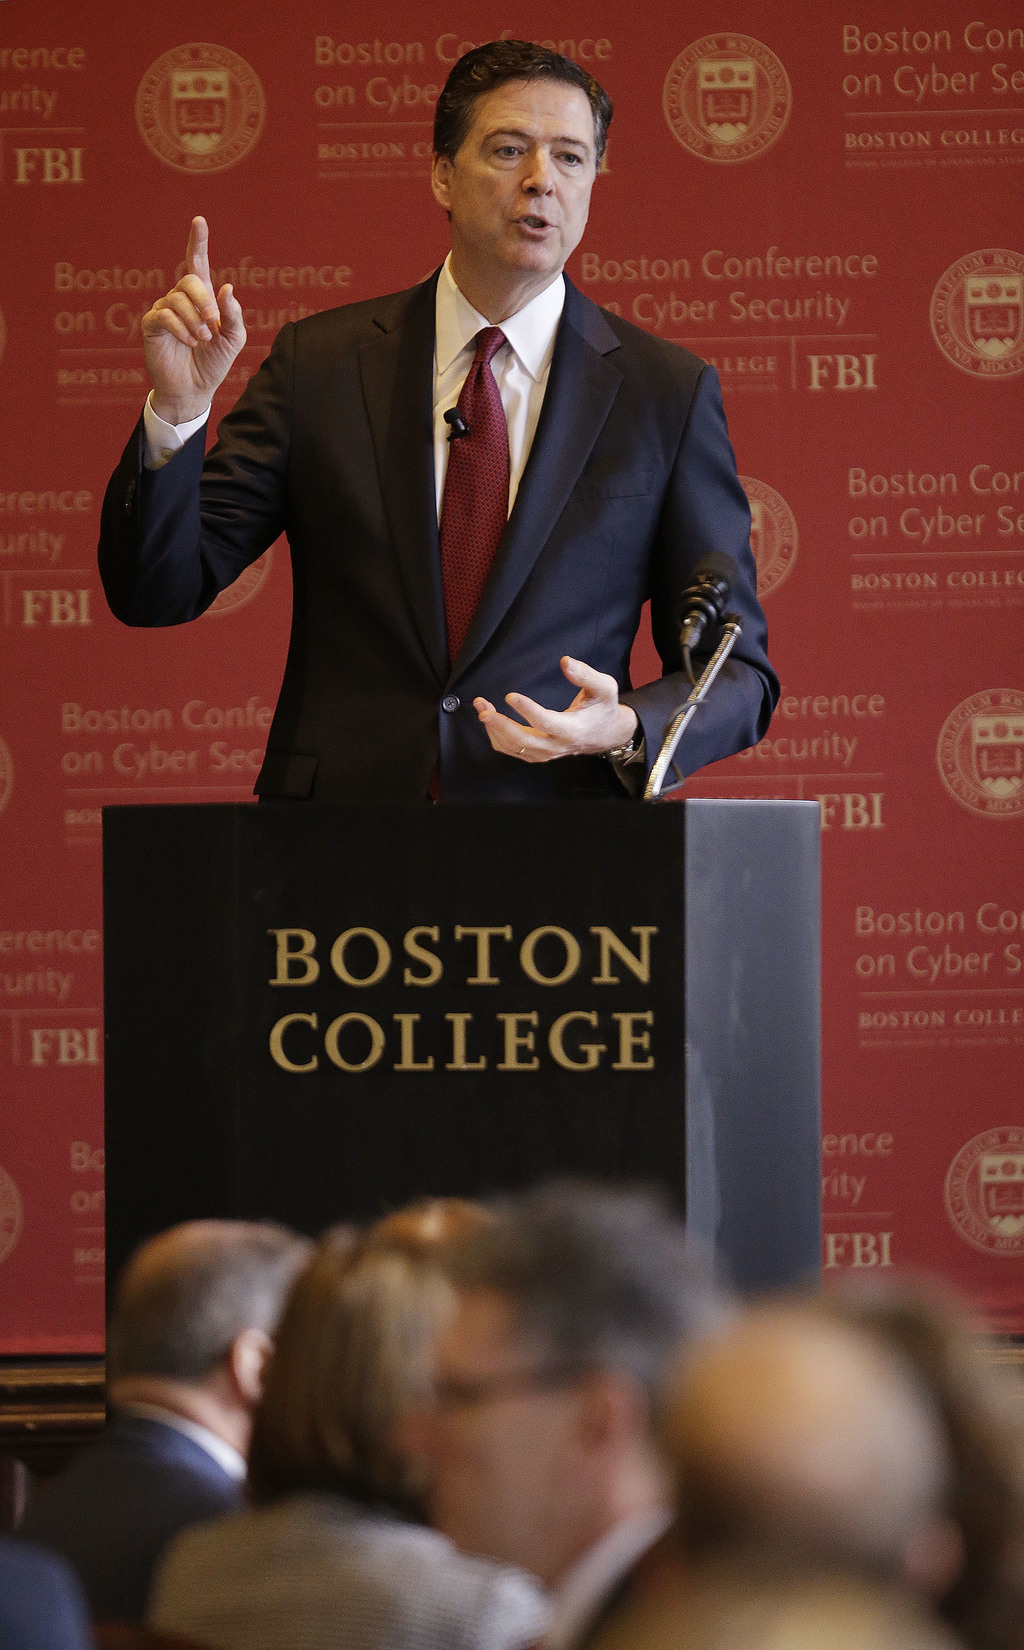 FBI Director James Comey gestures as he speaks on cyber security at the first Boston Conference of Cyber Security at Boston College, We...